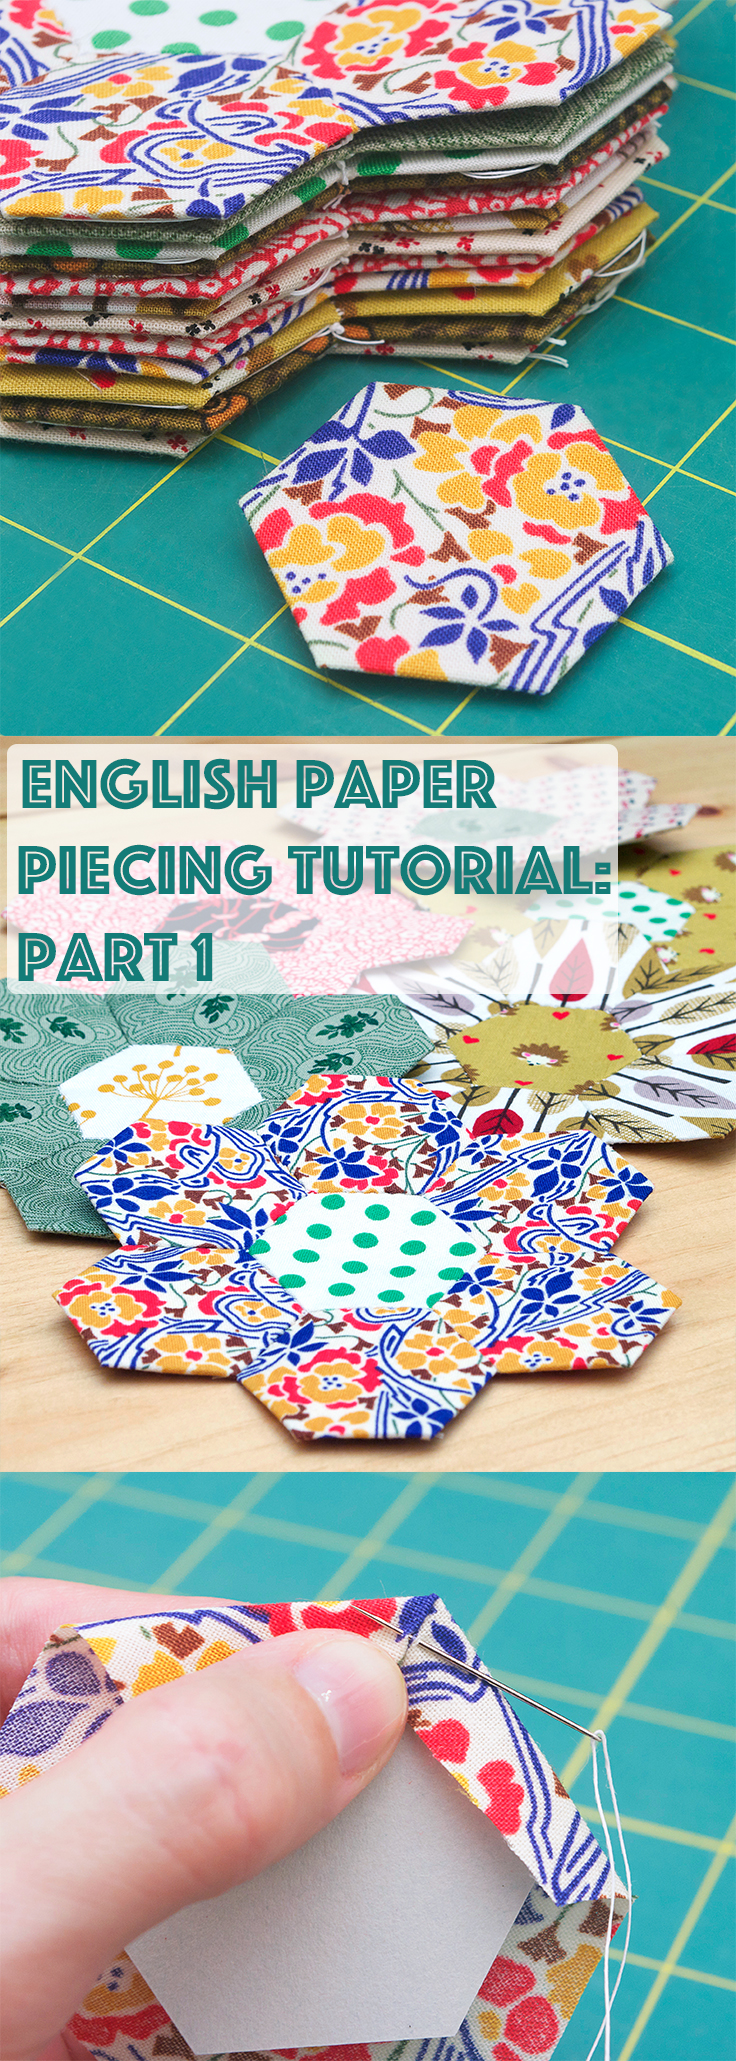 English Paper Piecing Tutorial: Part 1: Got fabric scraps? Get quilting! Jumpstart your hexie obsession with my free 1-inch hexagon template and part one in my English paper piecing tutorial series!